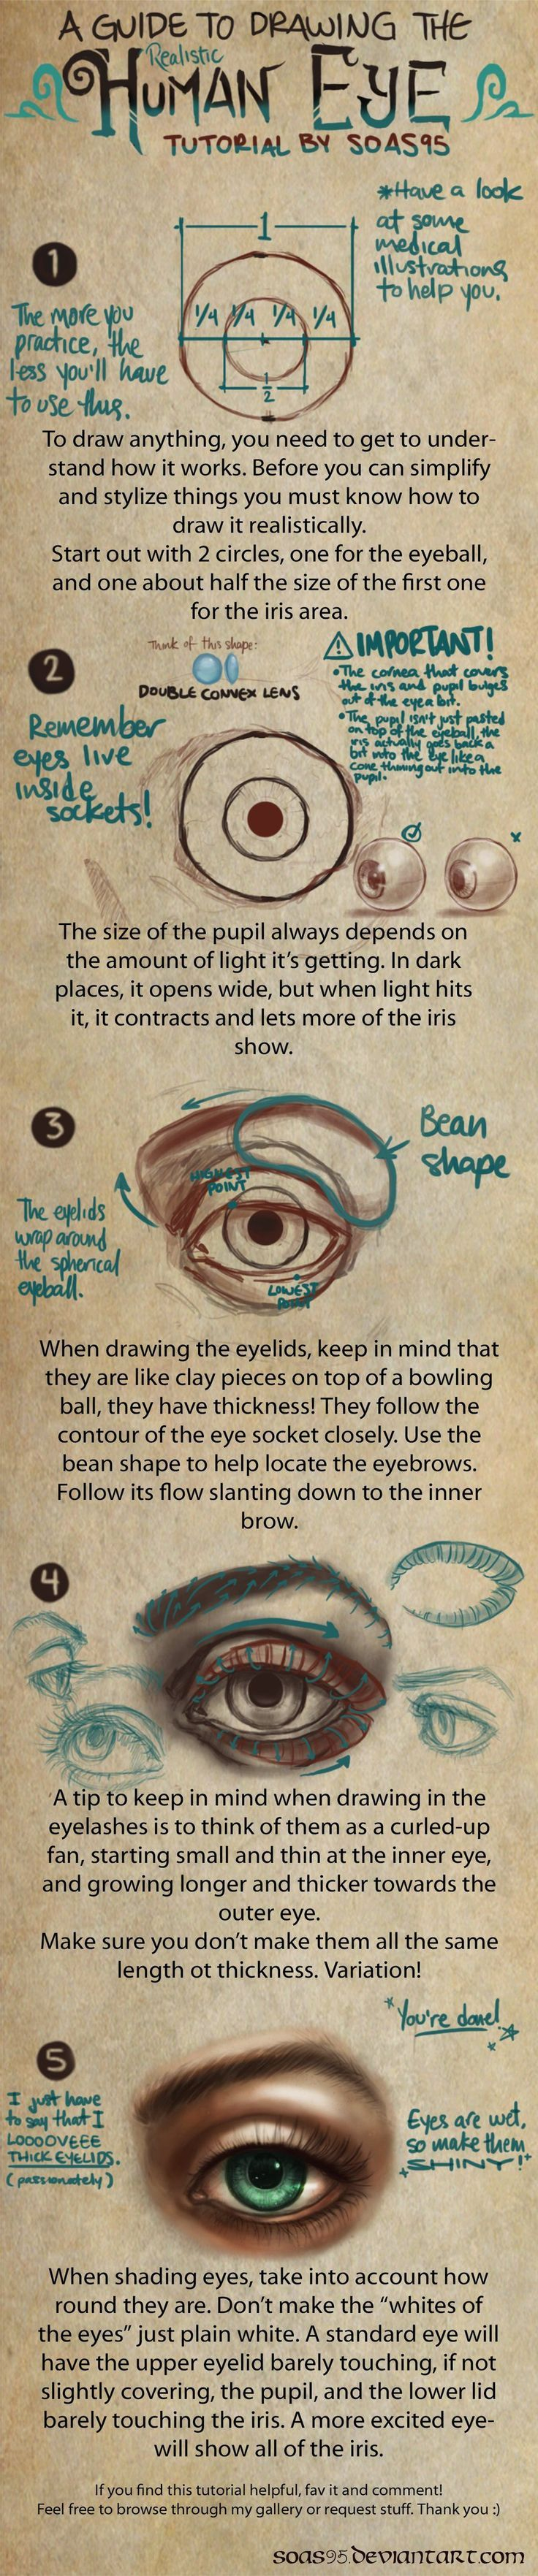 Human Eye- TUTORIAL by *soas95 on deviantART http://soas95.deviantart.com/art/Human-Eye-TUTORIAL-392610867: